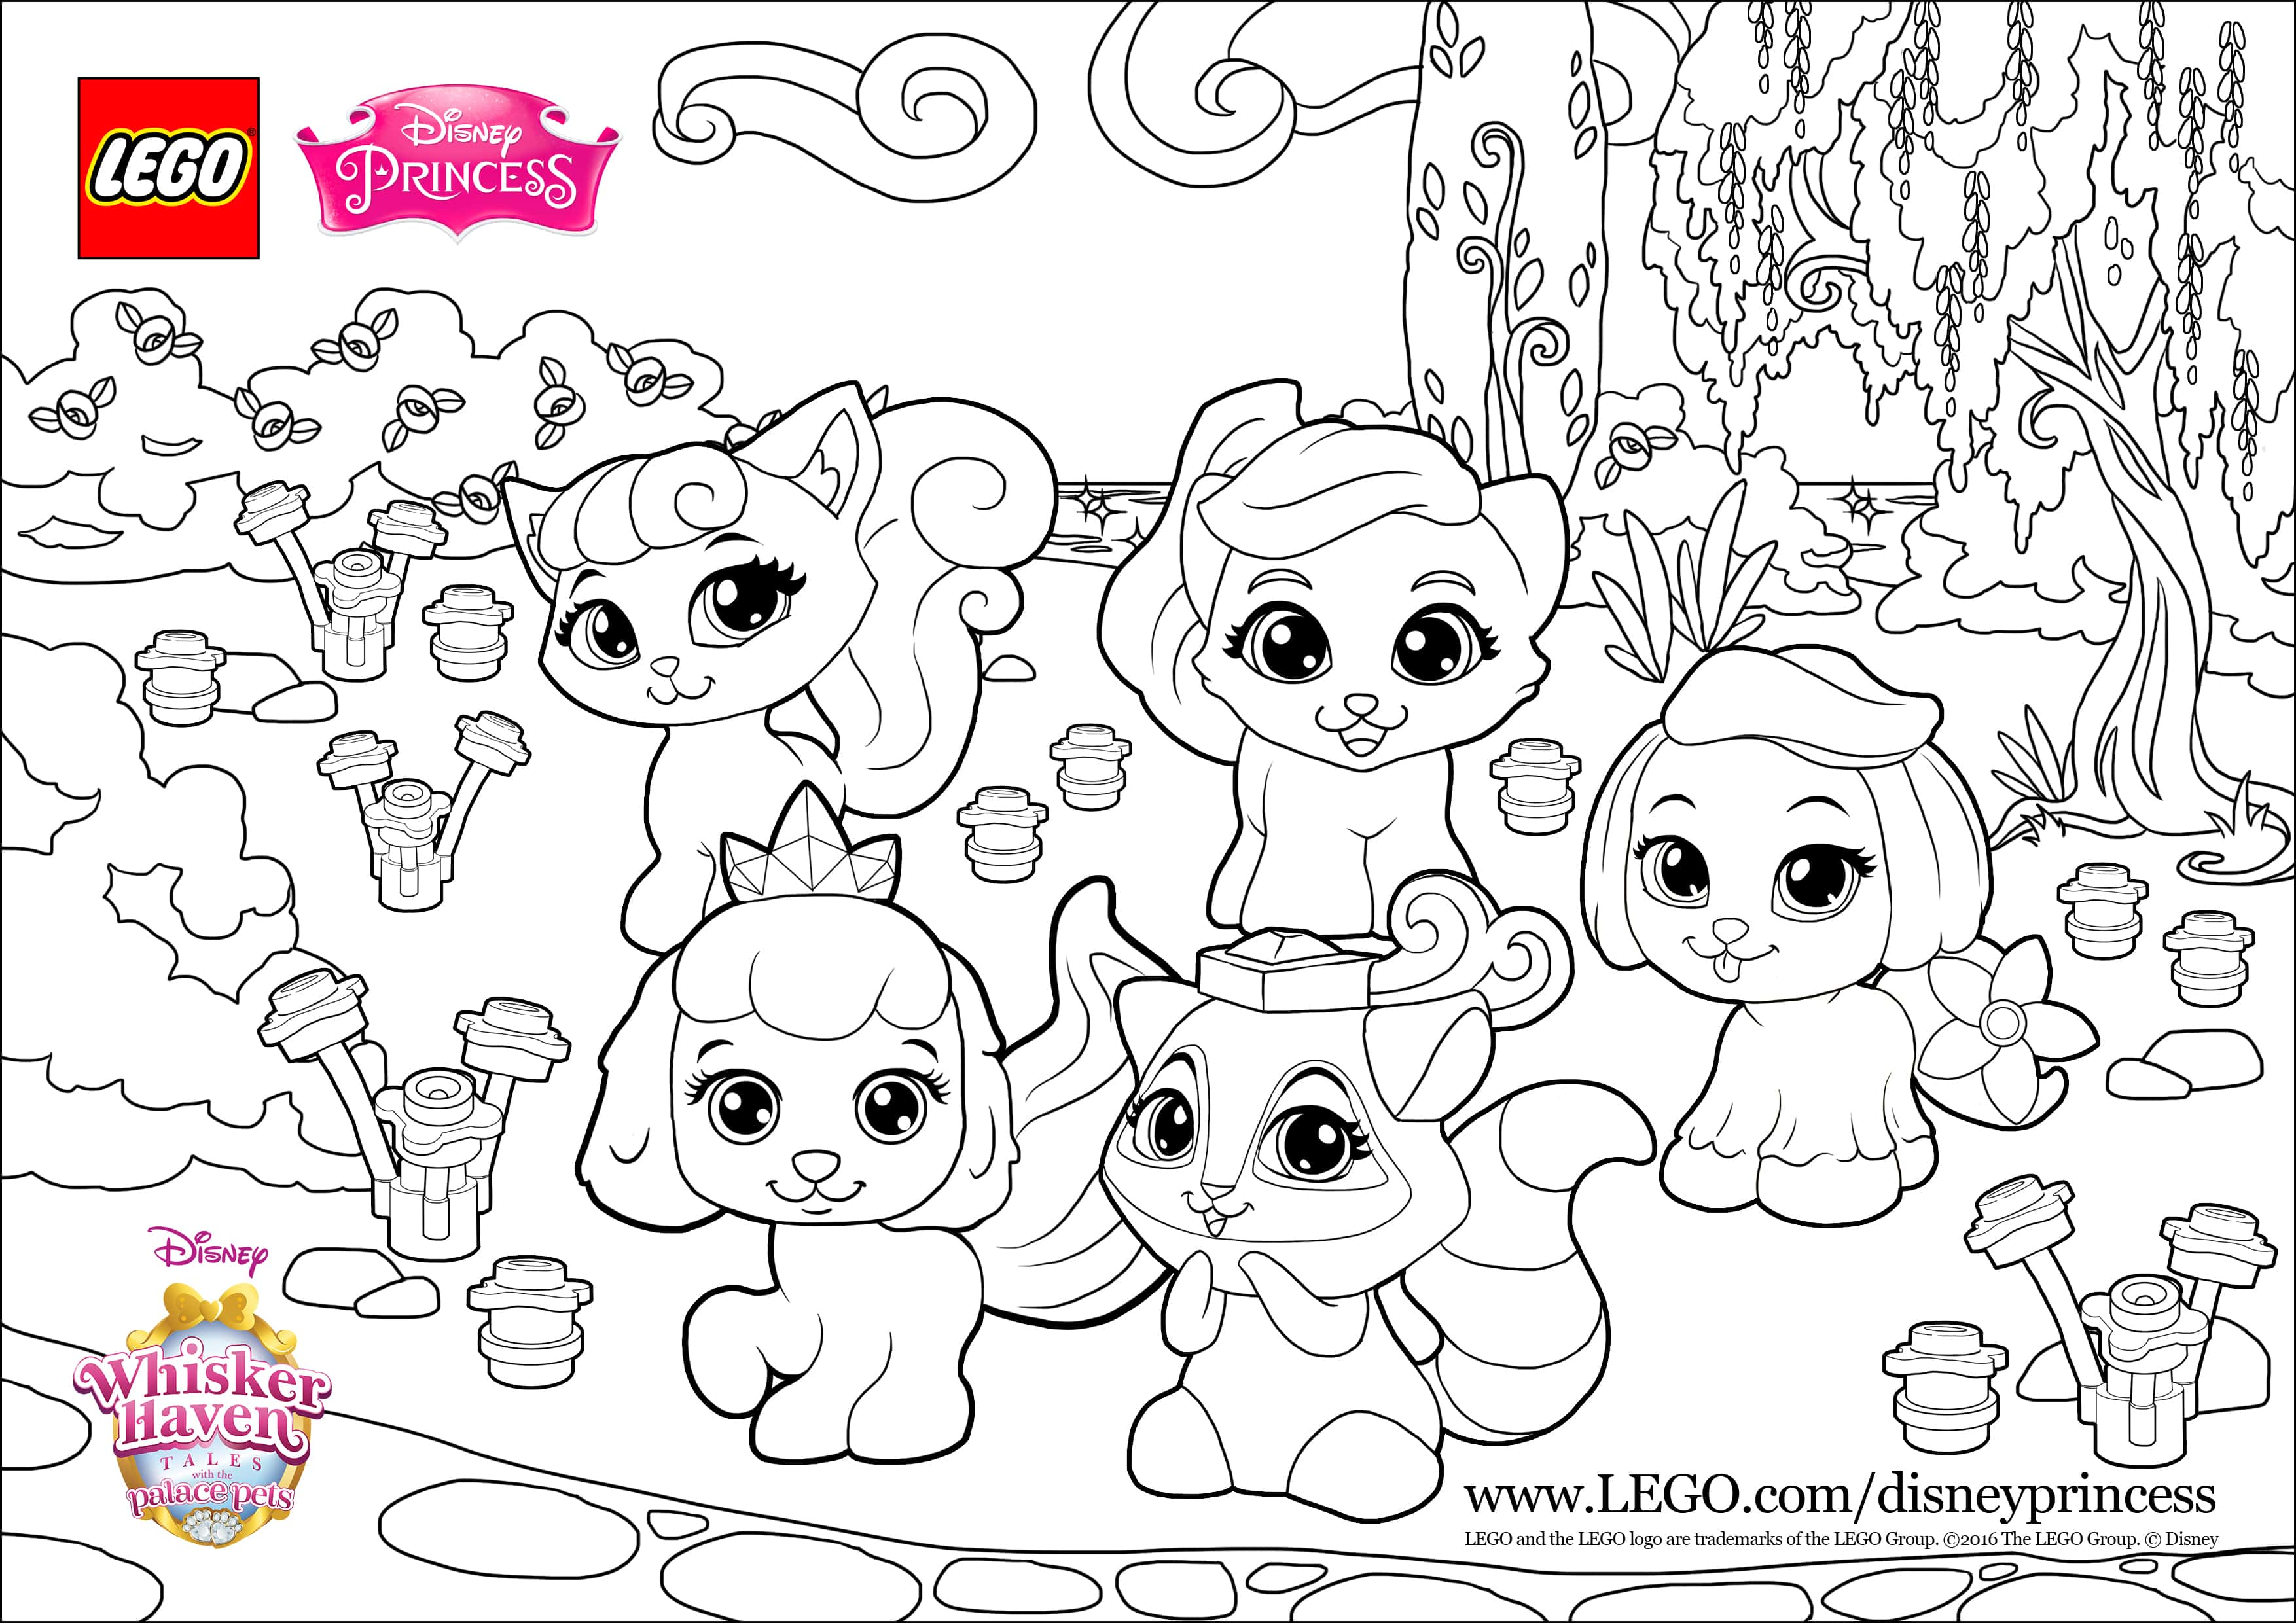 - Create Your Own Party With The Palace Pets - Coloring Page